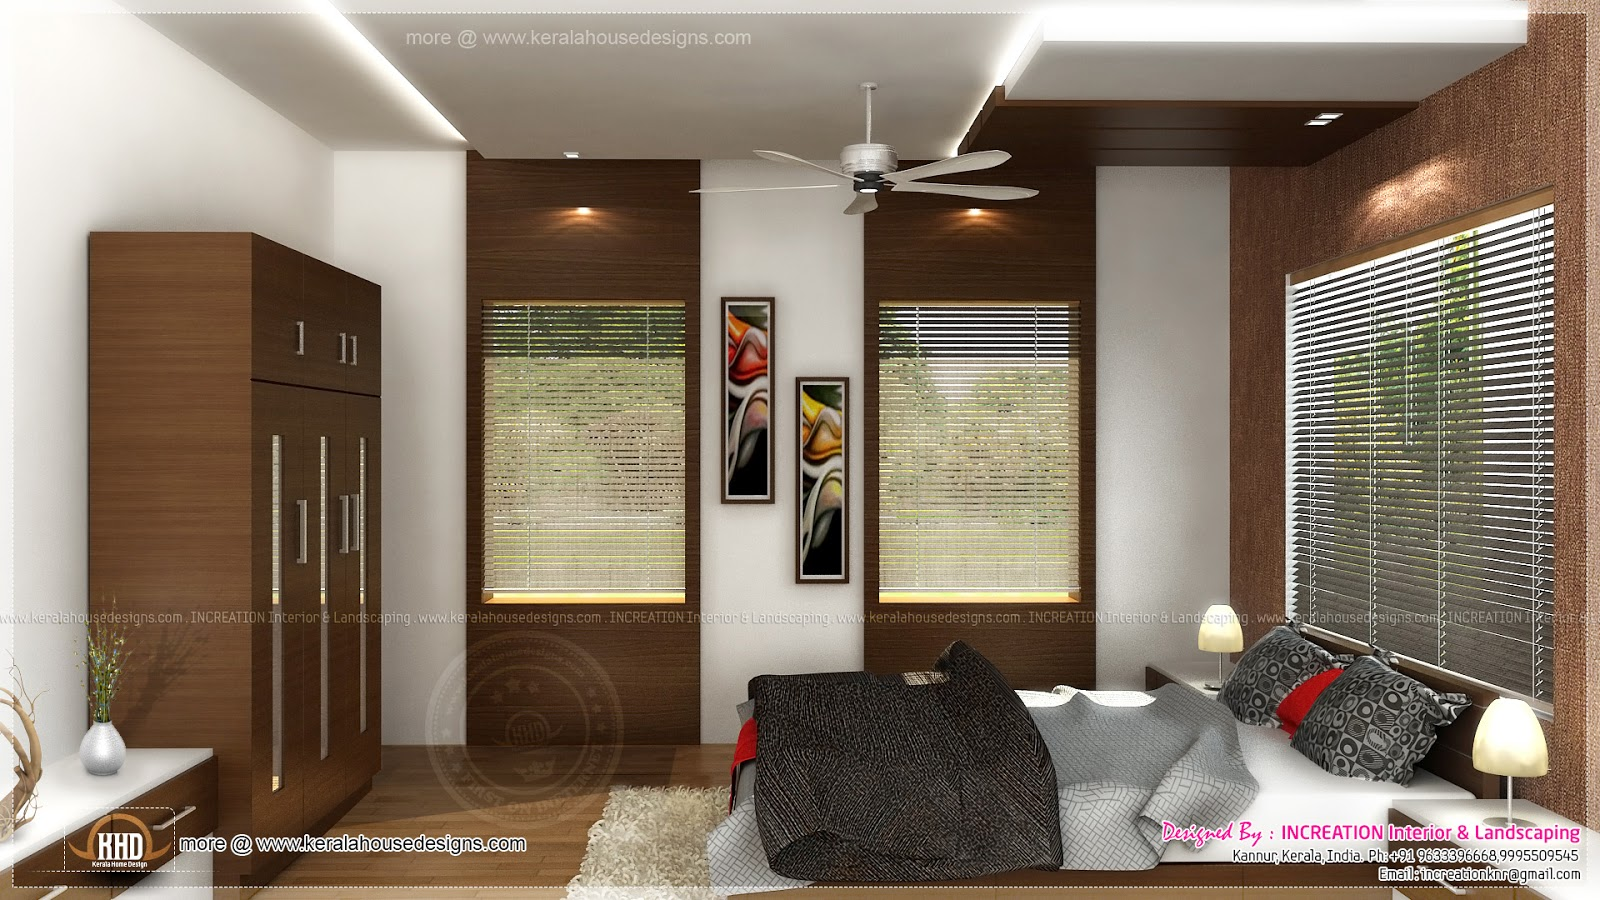 Interior designs from kannur kerala kerala home design for Interior designs in home